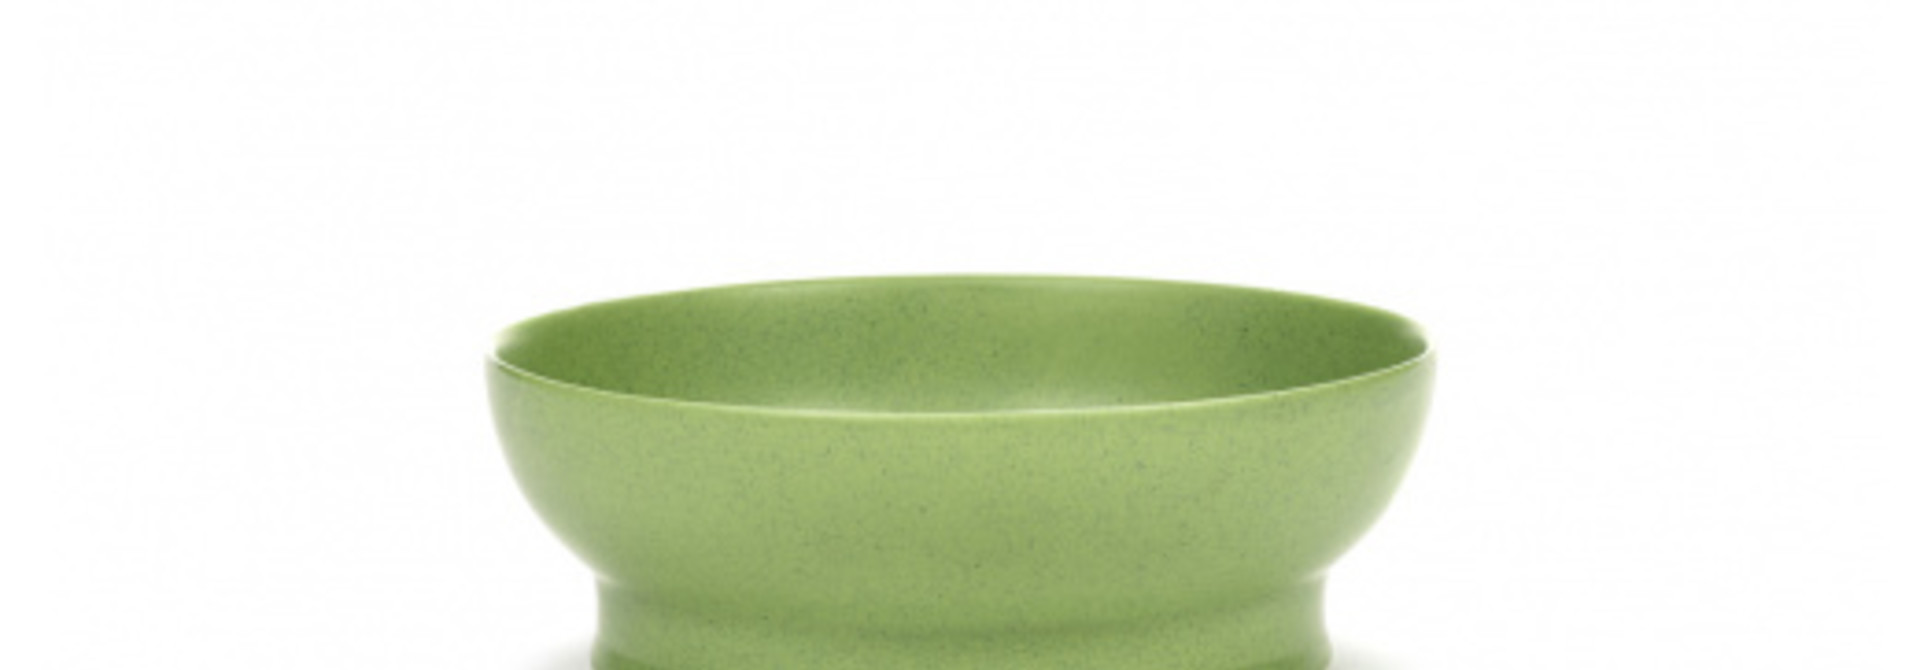 Bowl - Matt Green - Small